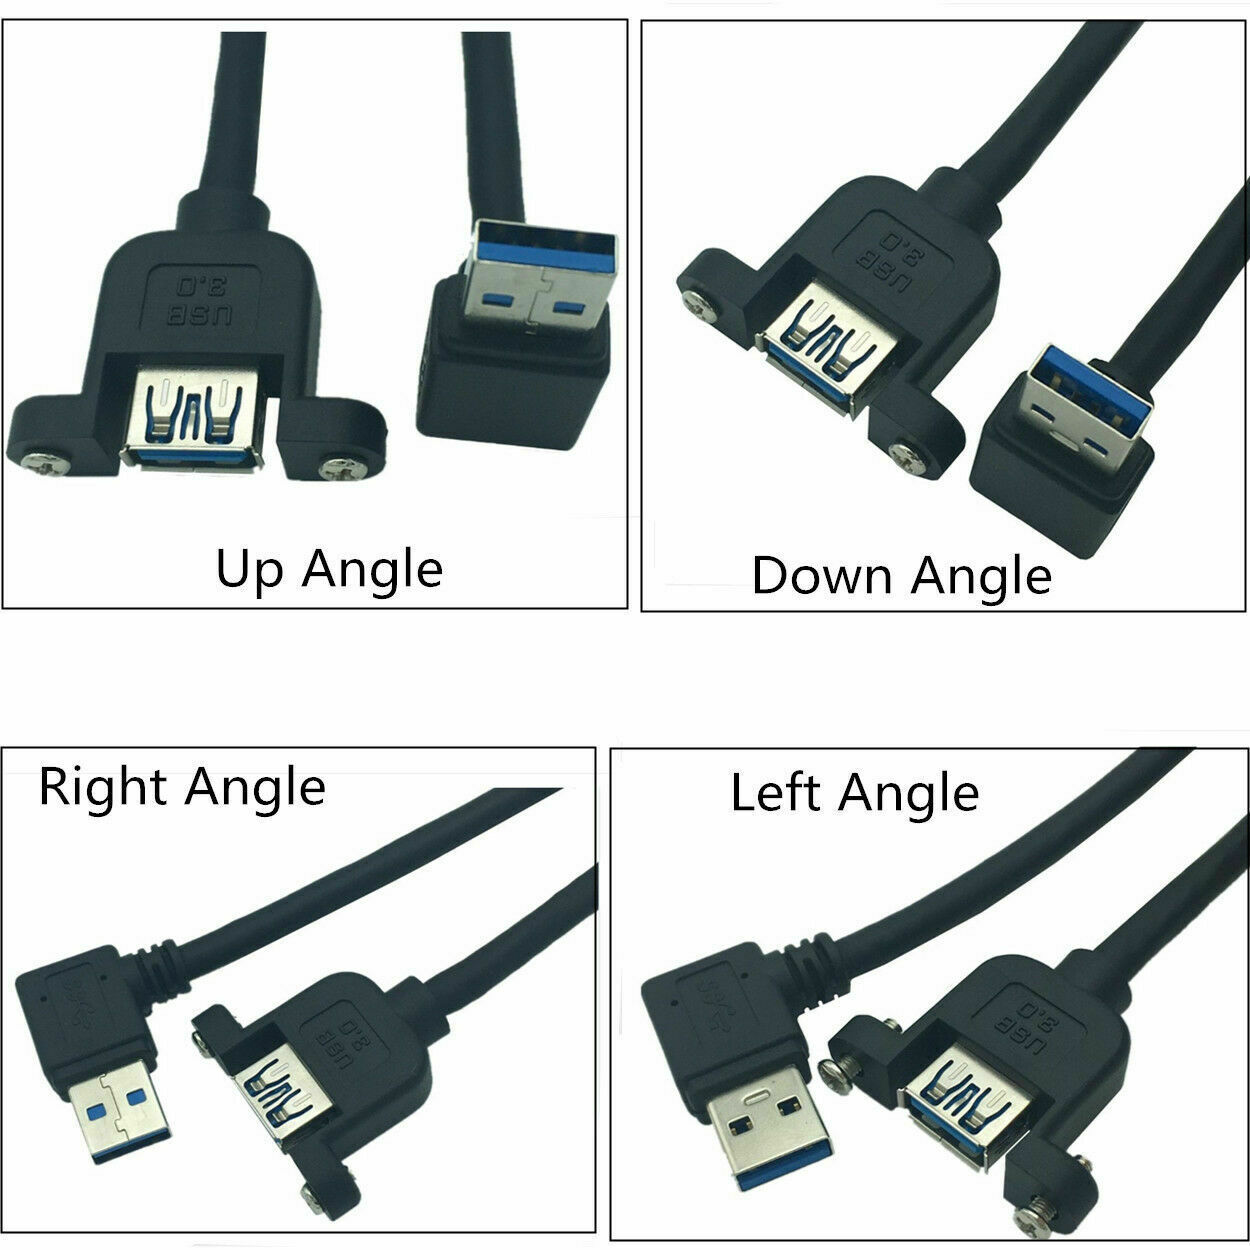 30cm 90Degree Angled USB 3.0 A Male to Female Extension Cable & Panel Mount Lock